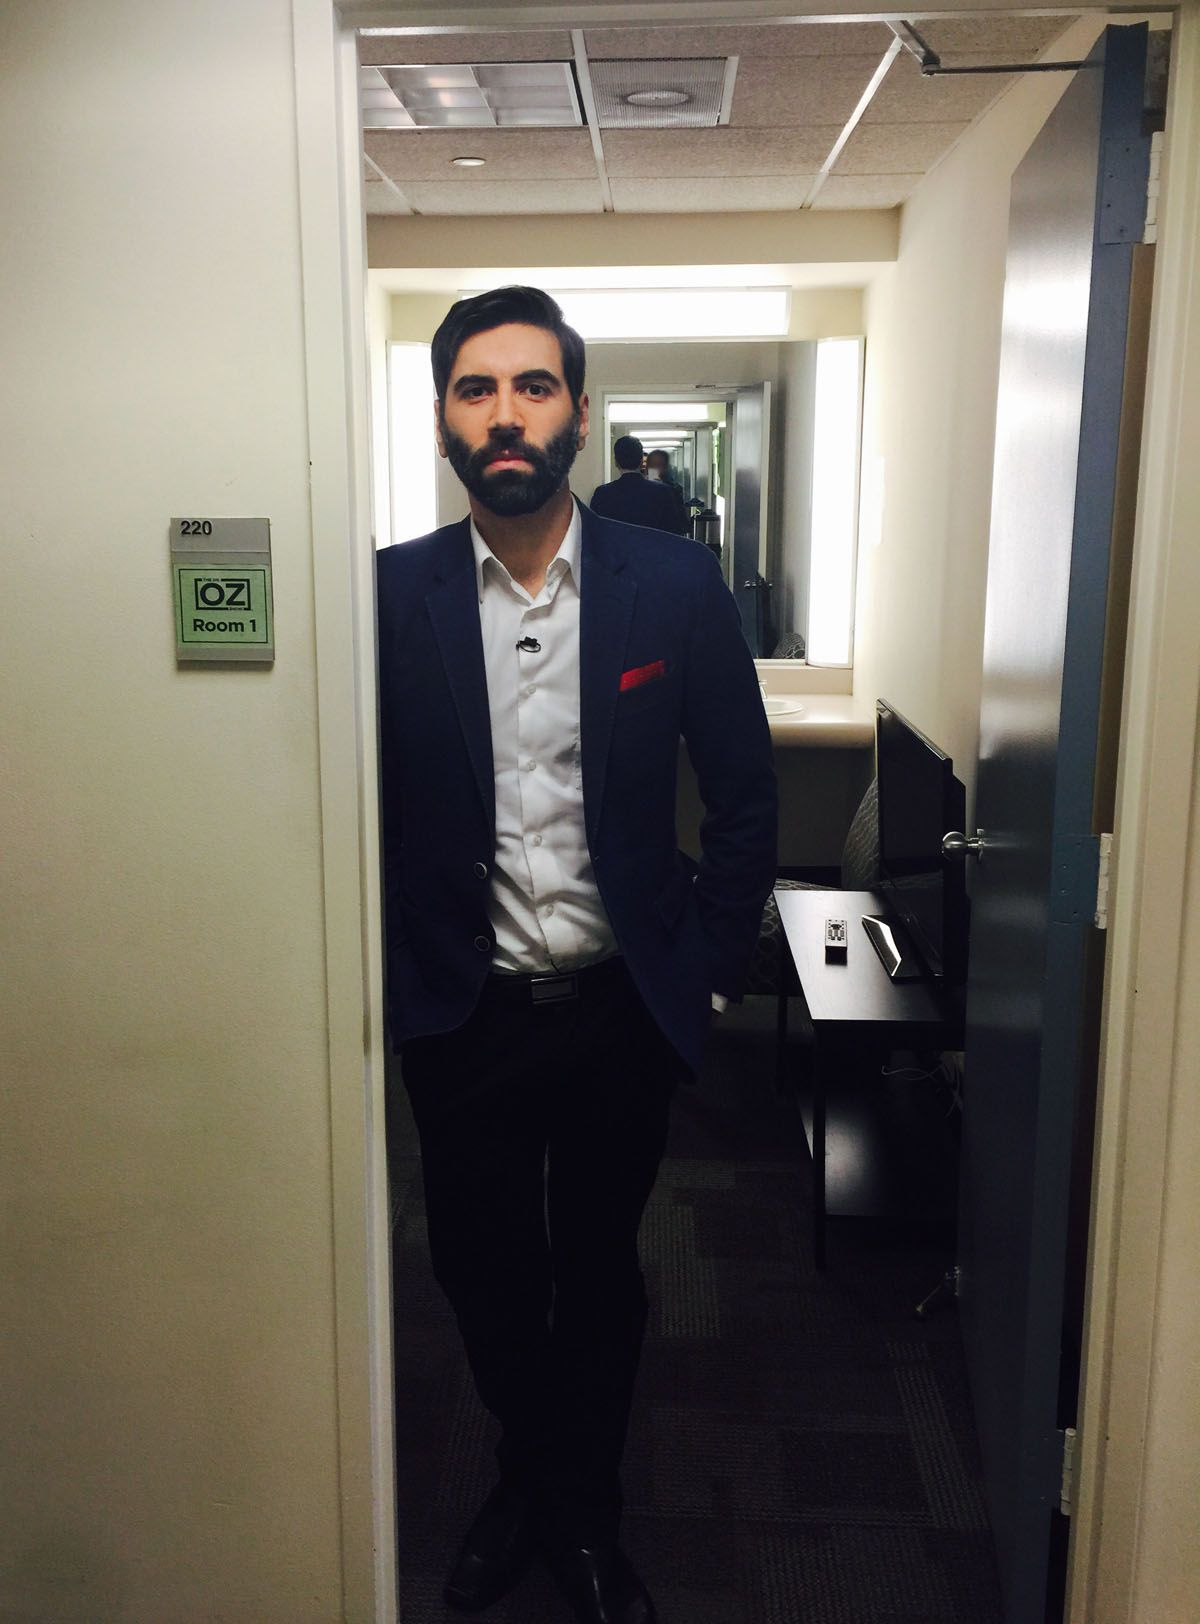 Roosh V's journey from pickup artist to right-wing provocateur